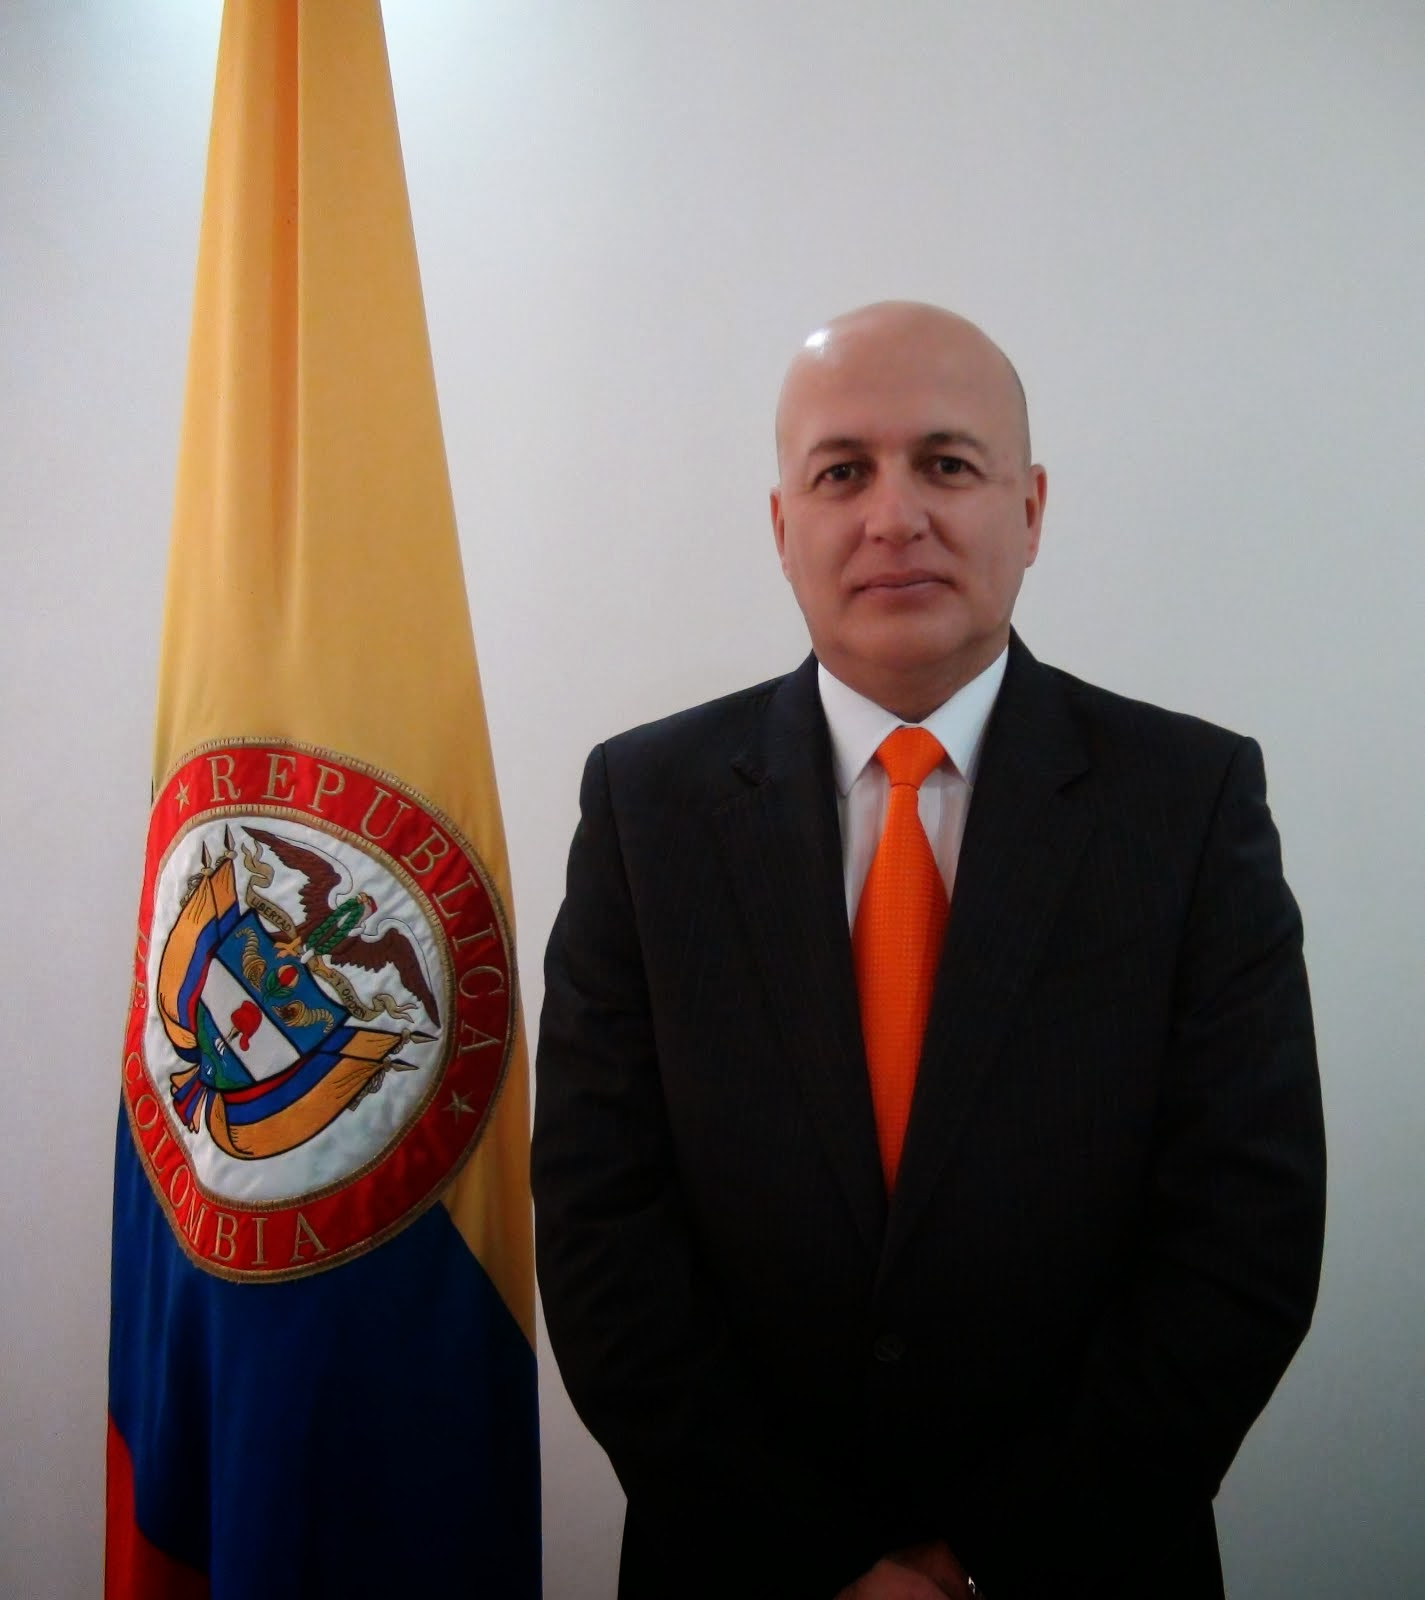 DIRECTOR GENERAL DEFENSA CIVIL COLOMBIANA